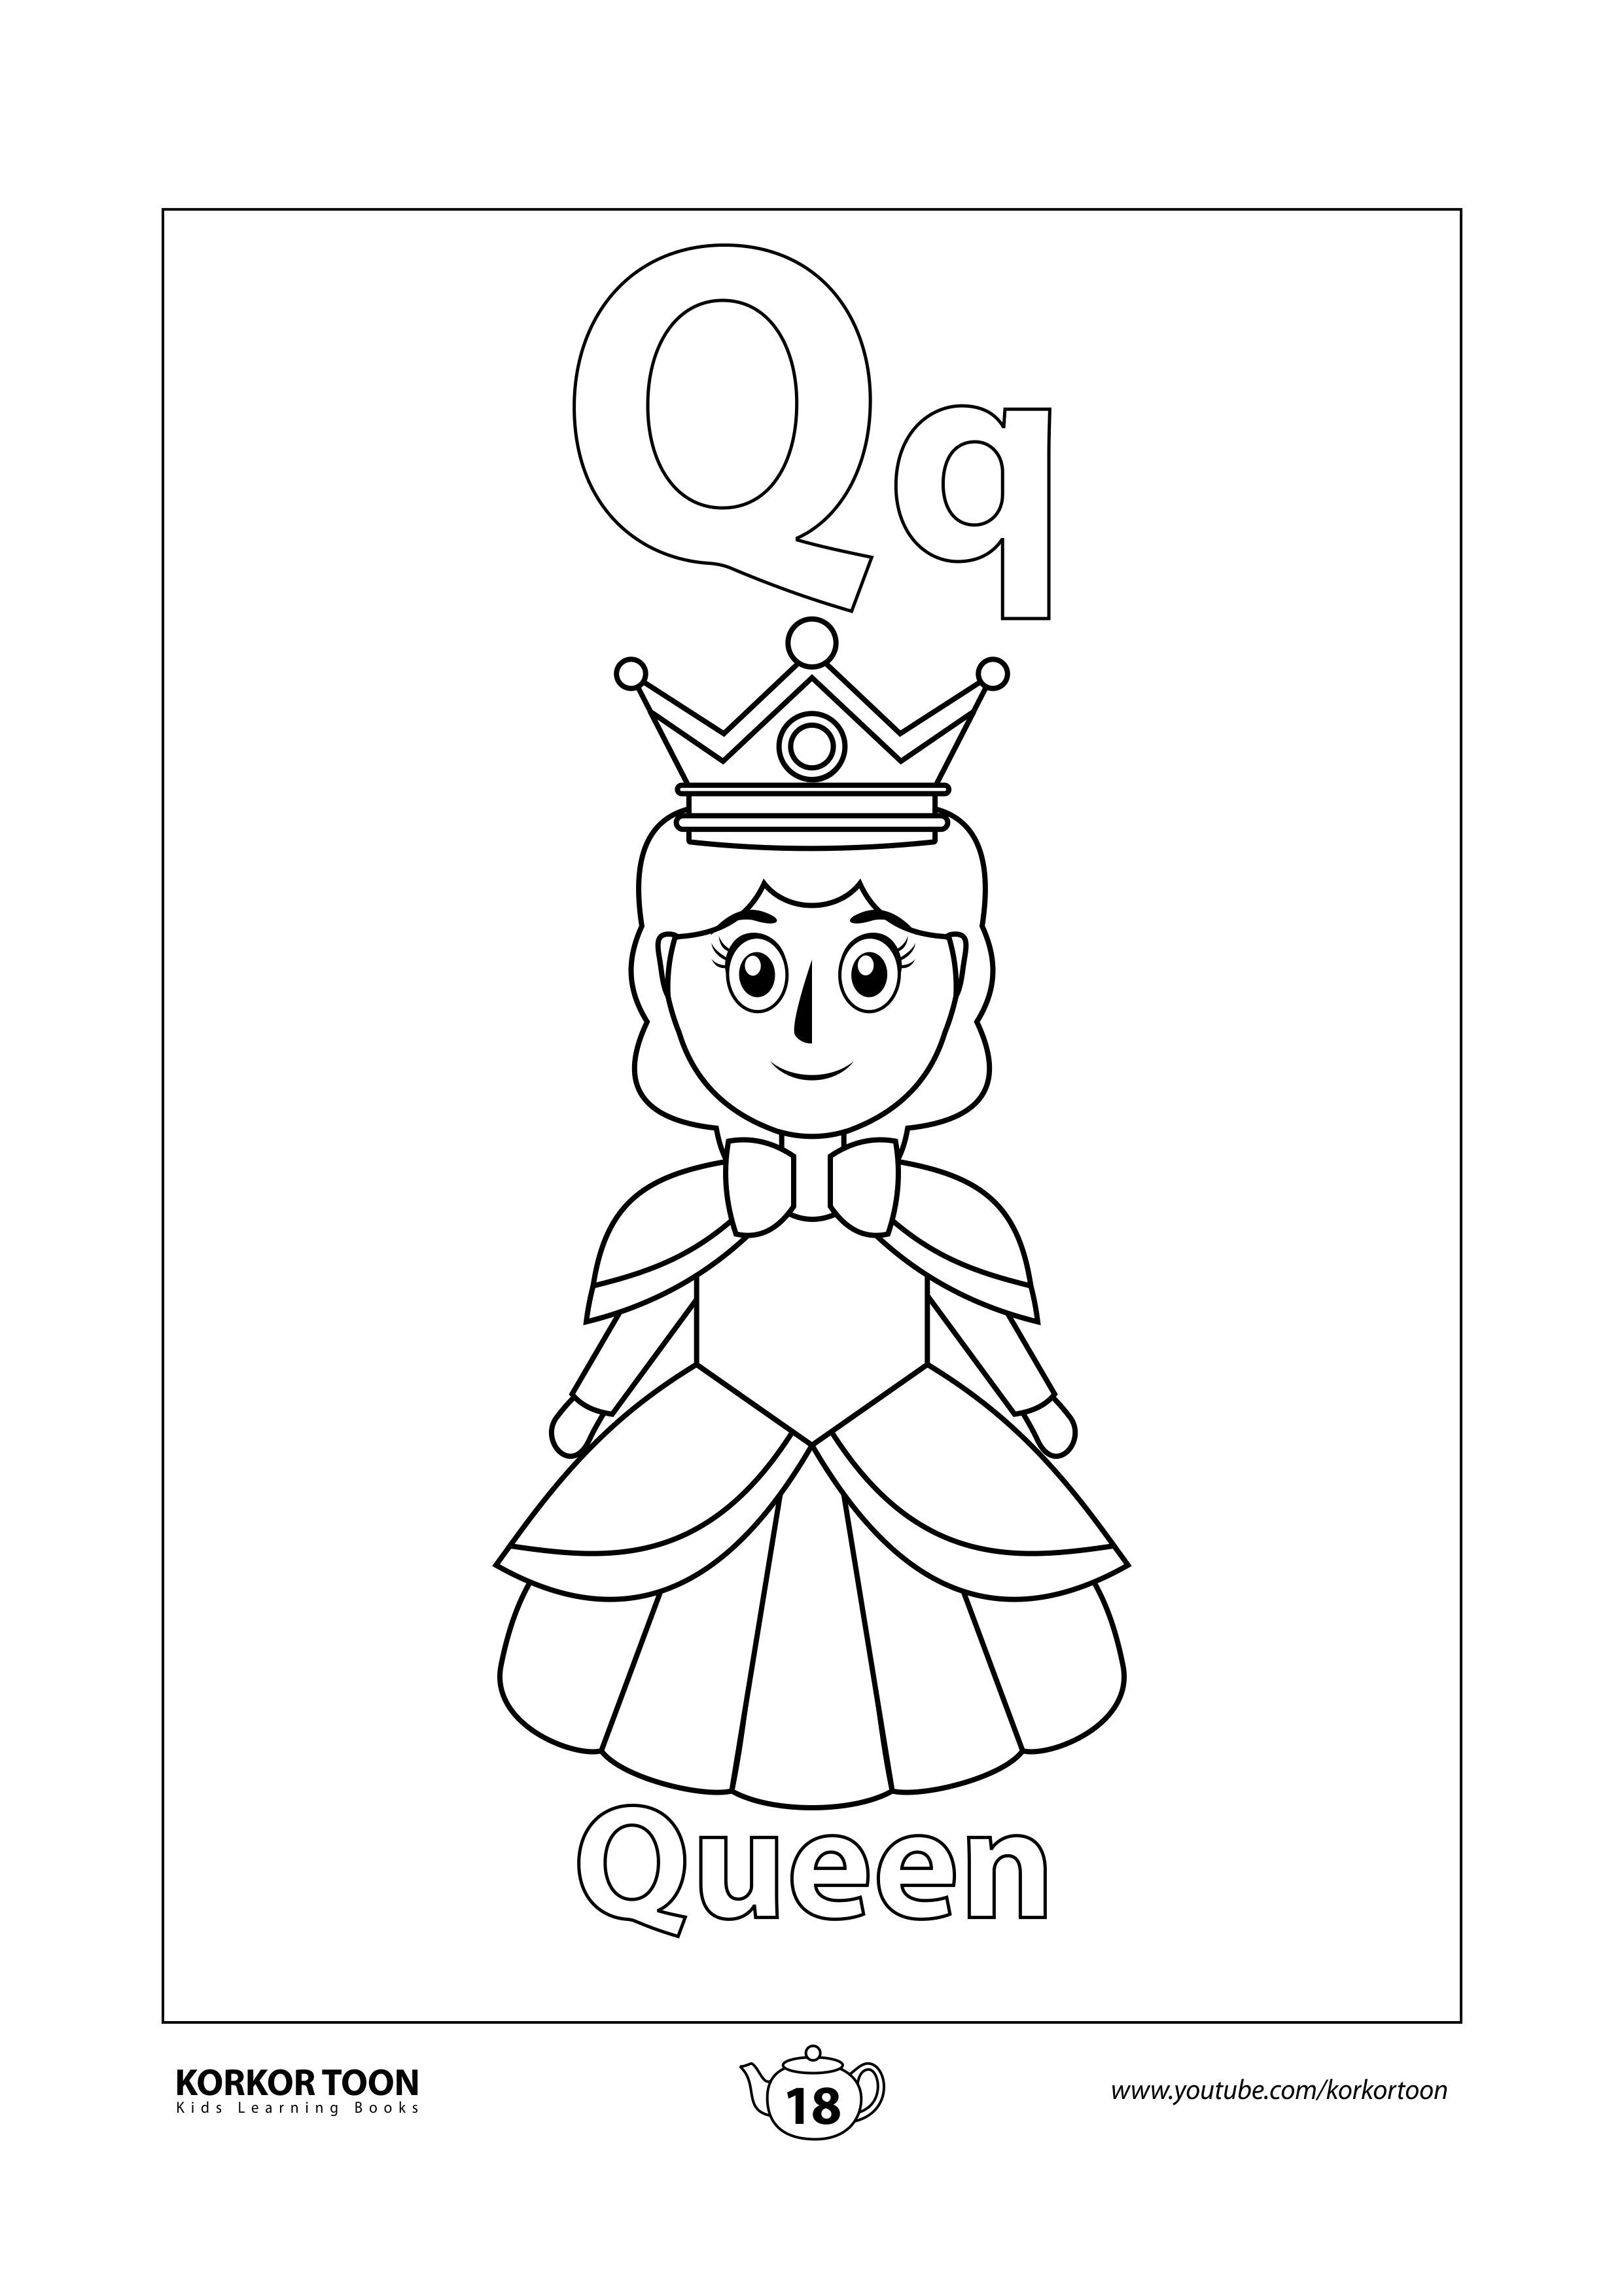 Queen Coloring Page Abc Coloring Book Coloring Books Abc Coloring Kids Coloring Books